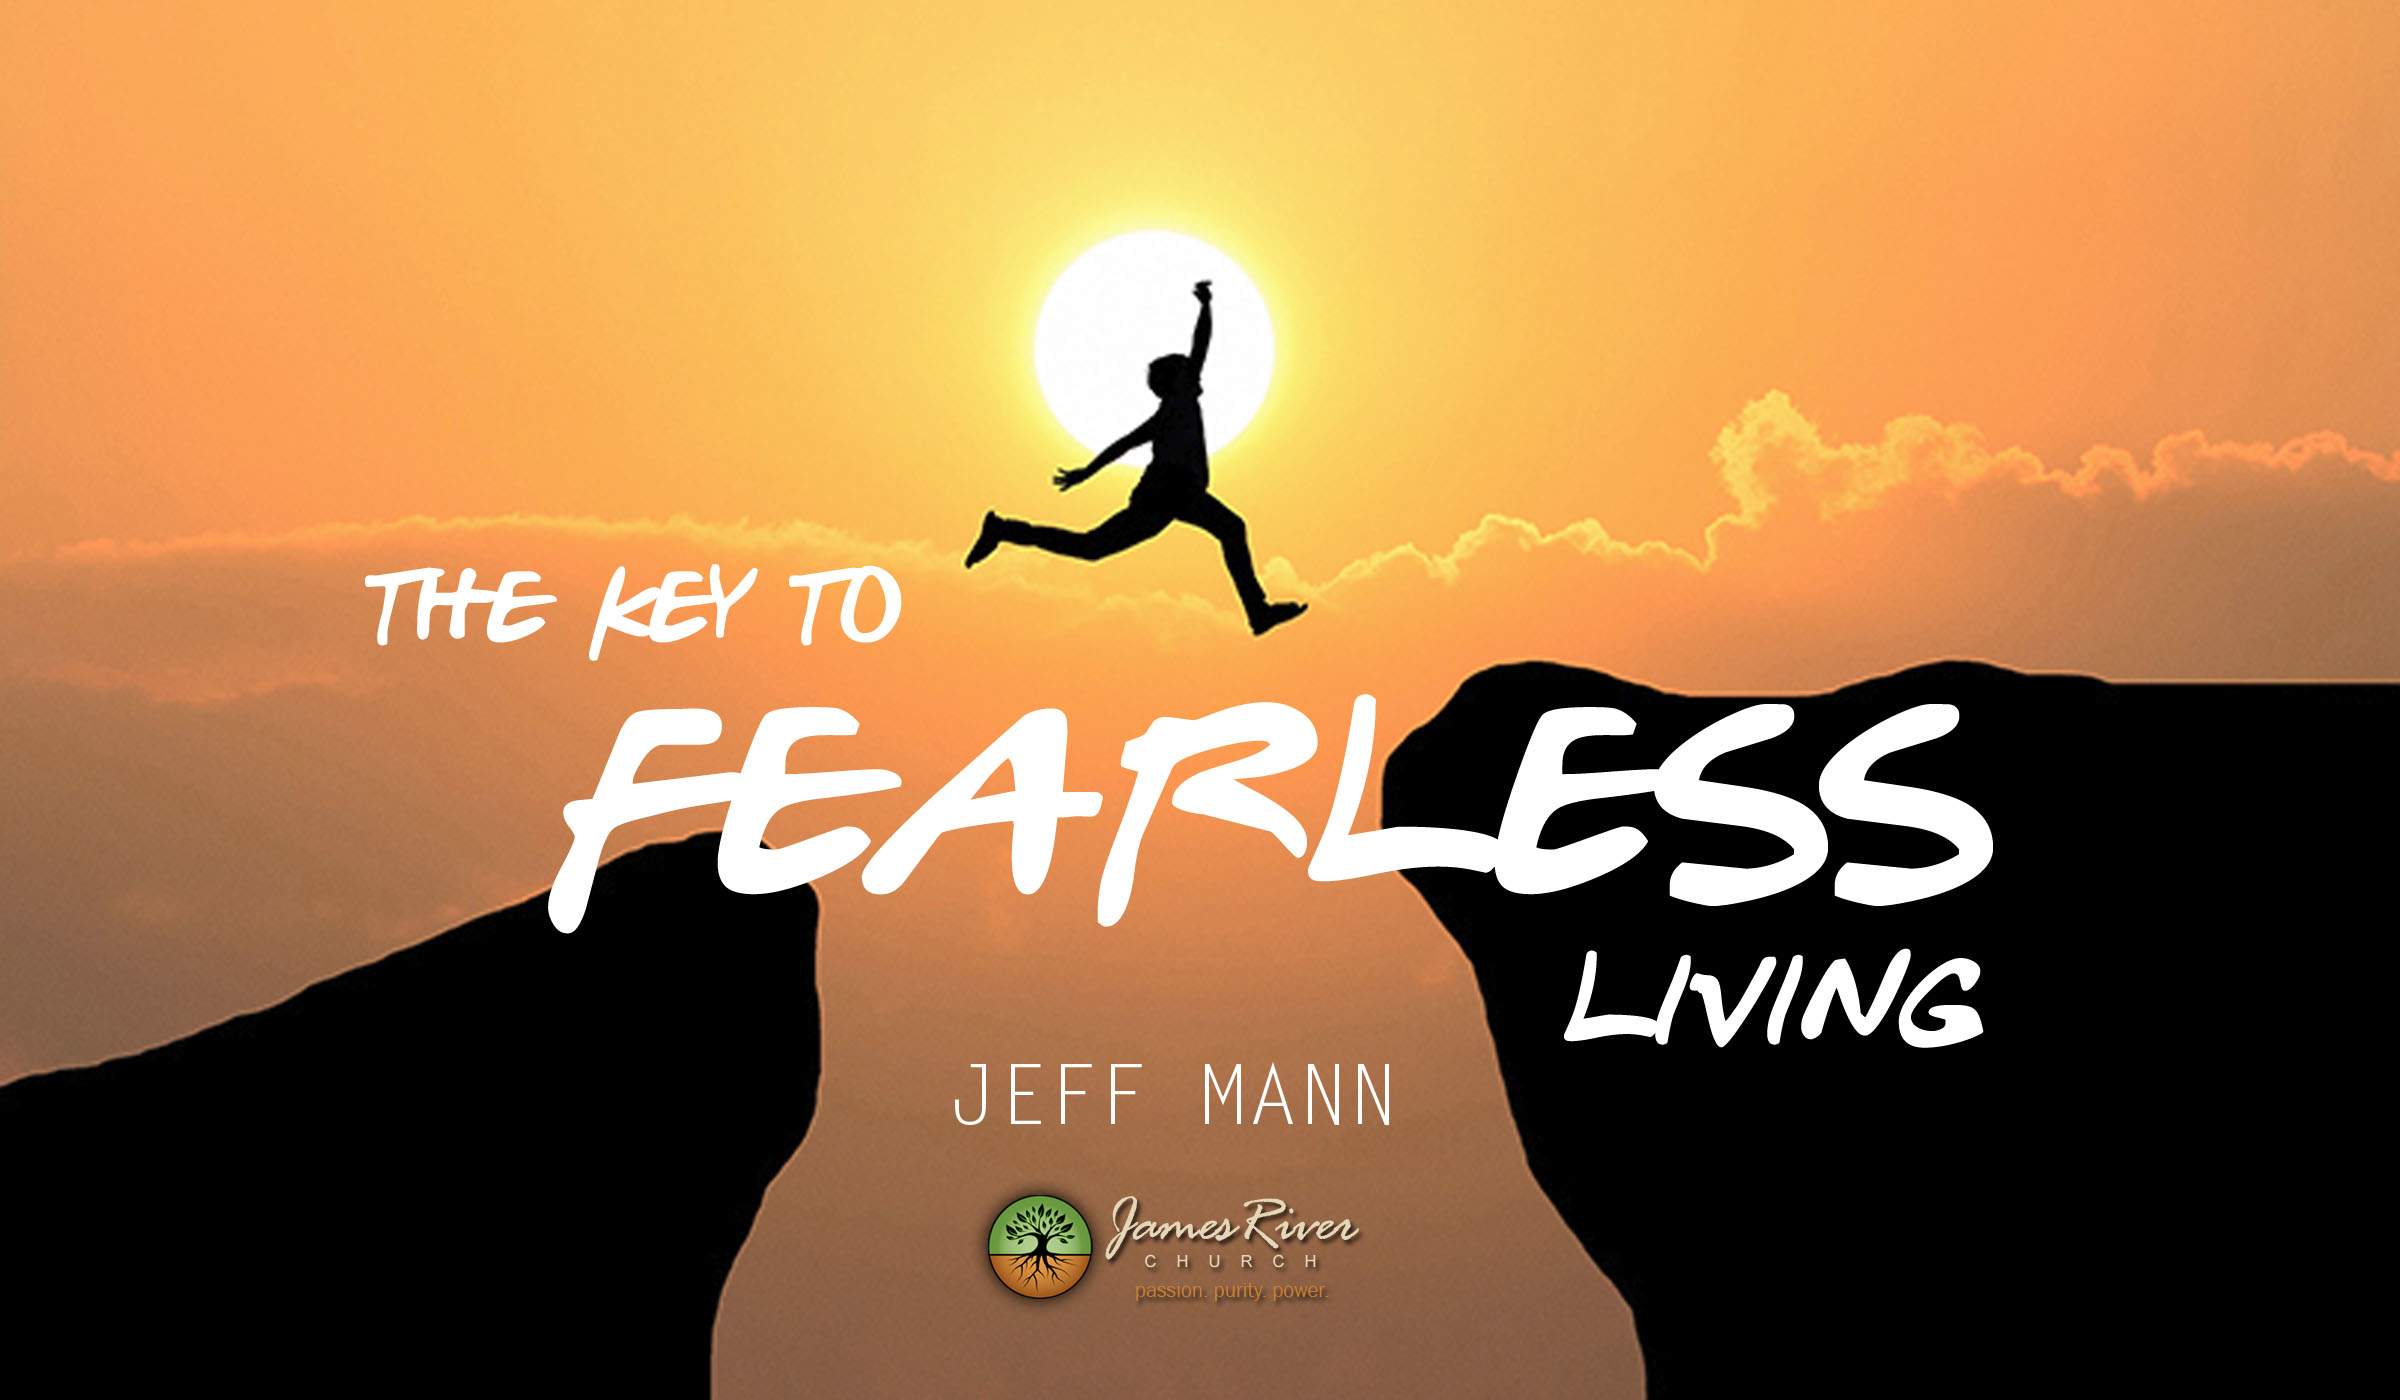 The Key To Fearless Living